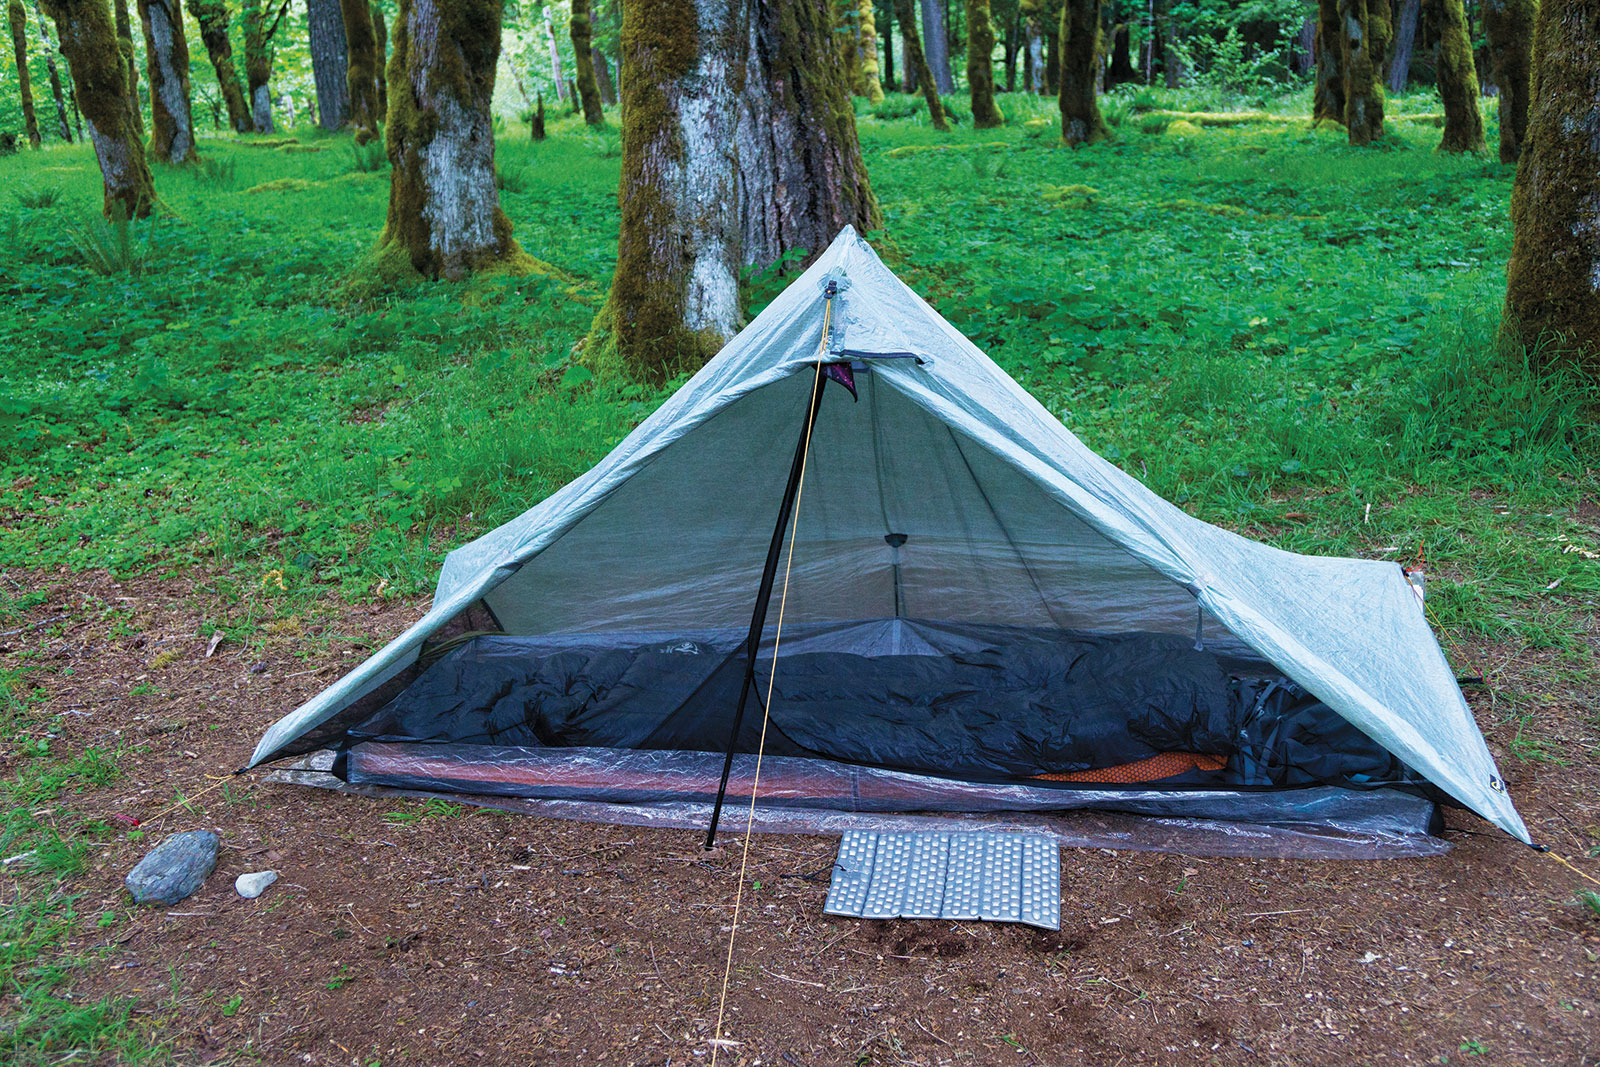 camp on durable surfaces